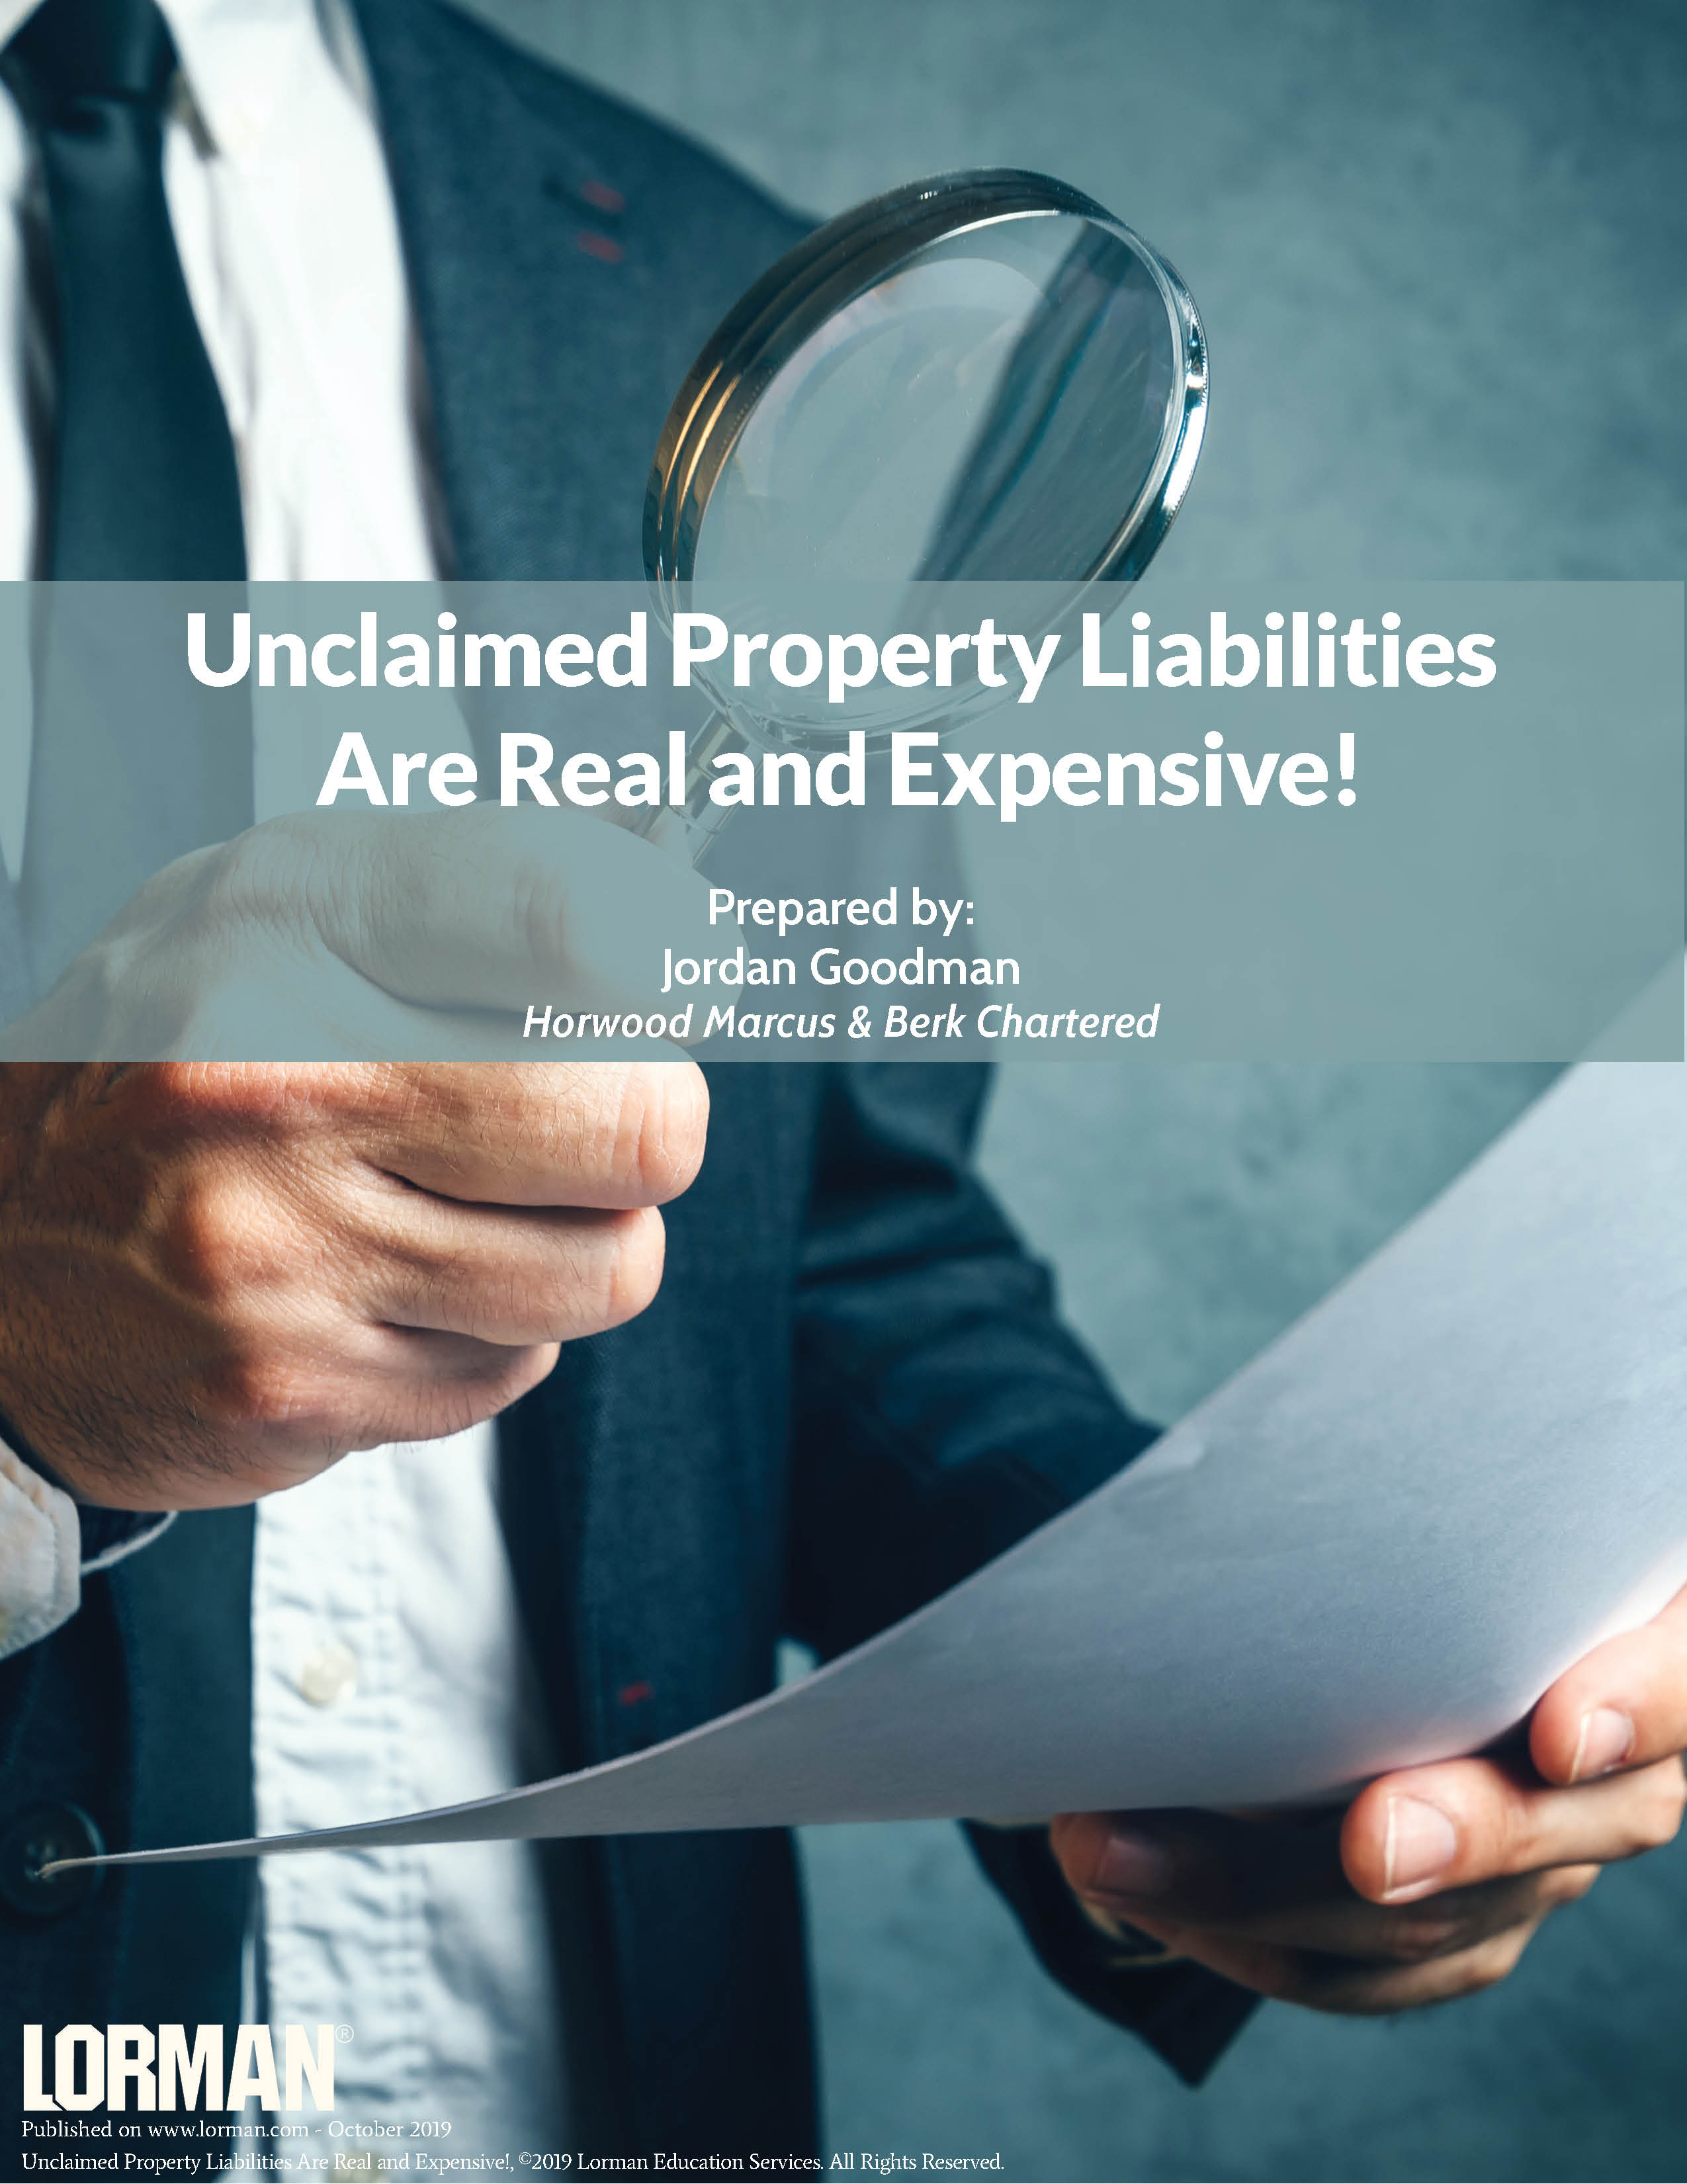 Unclaimed Property Liabilities